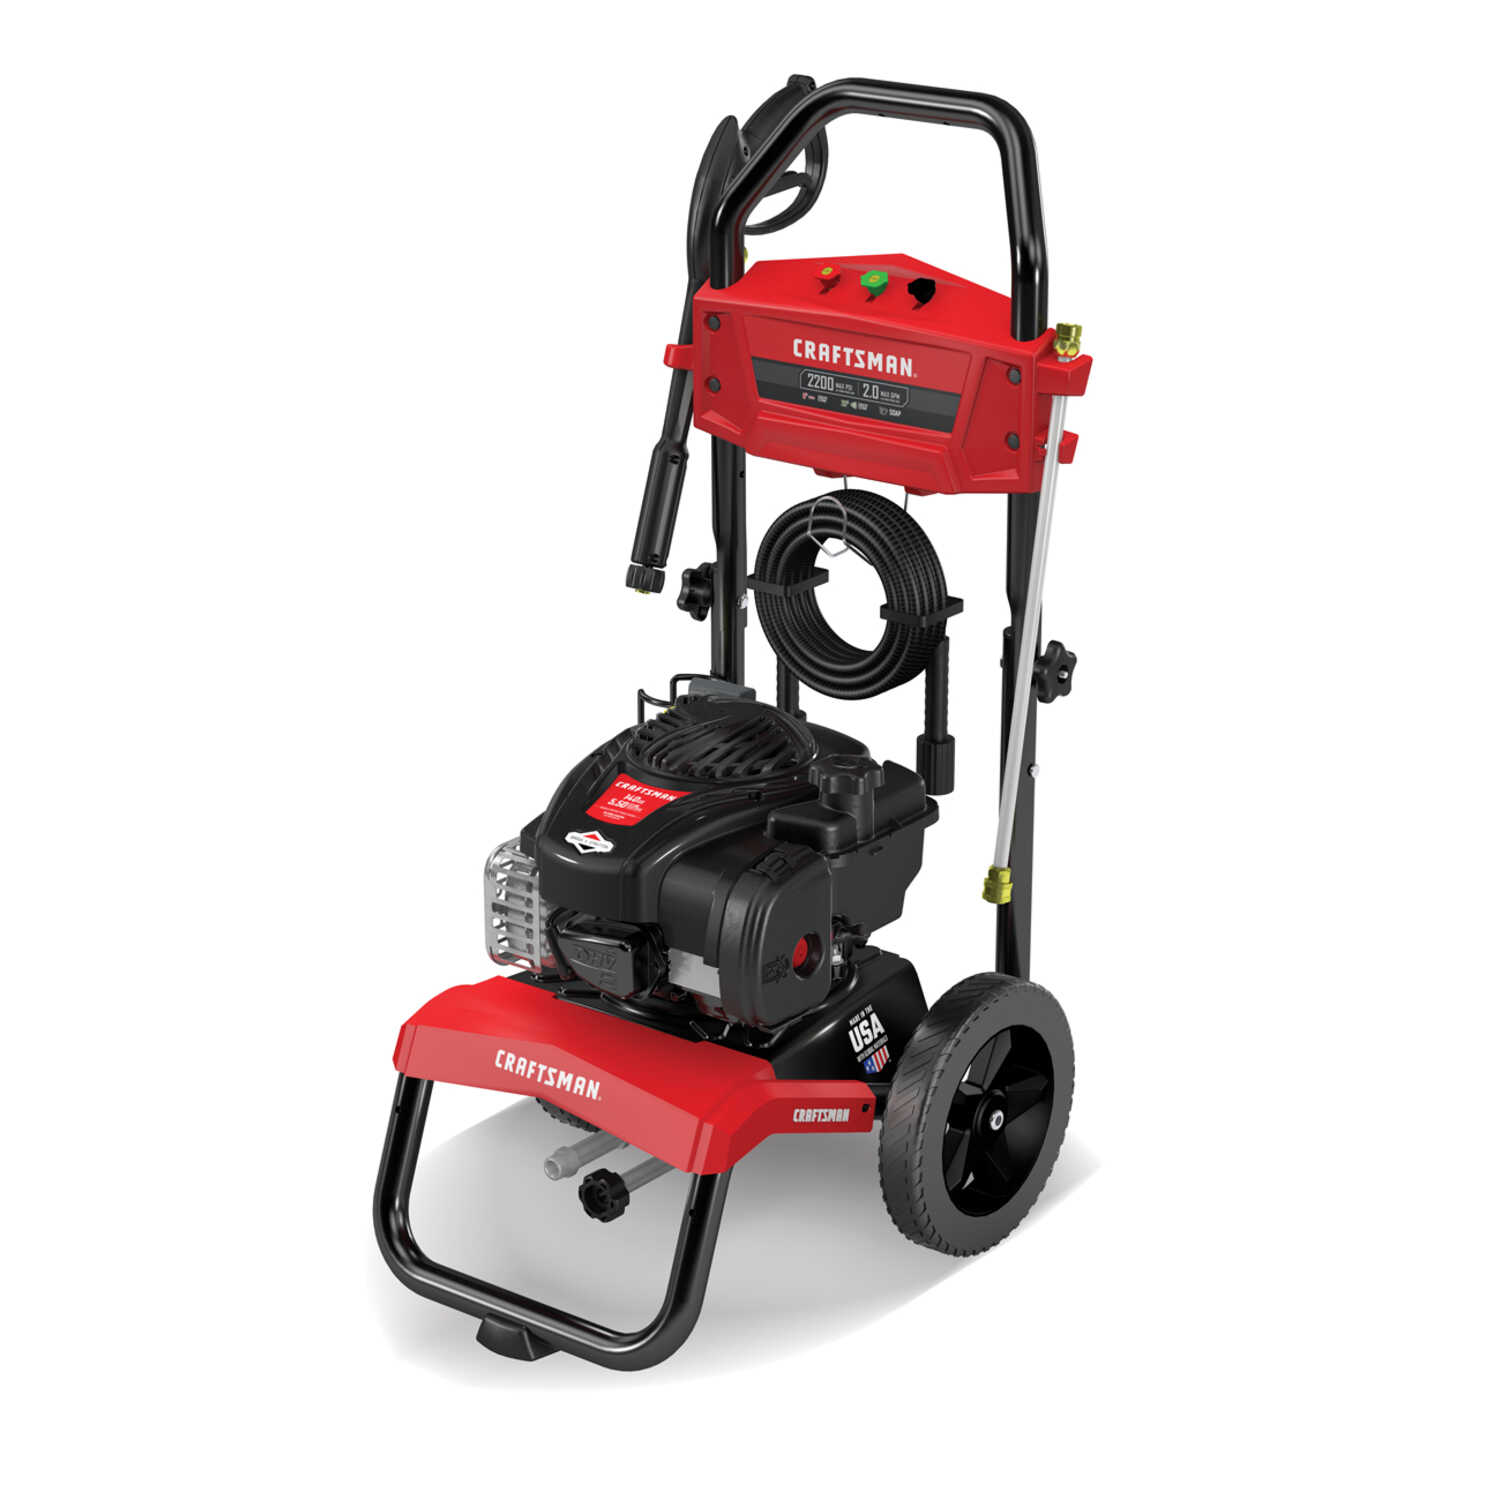 Craftsman  Briggs & Stratton  2200 psi Gasoline  2 gpm Pressure Washer